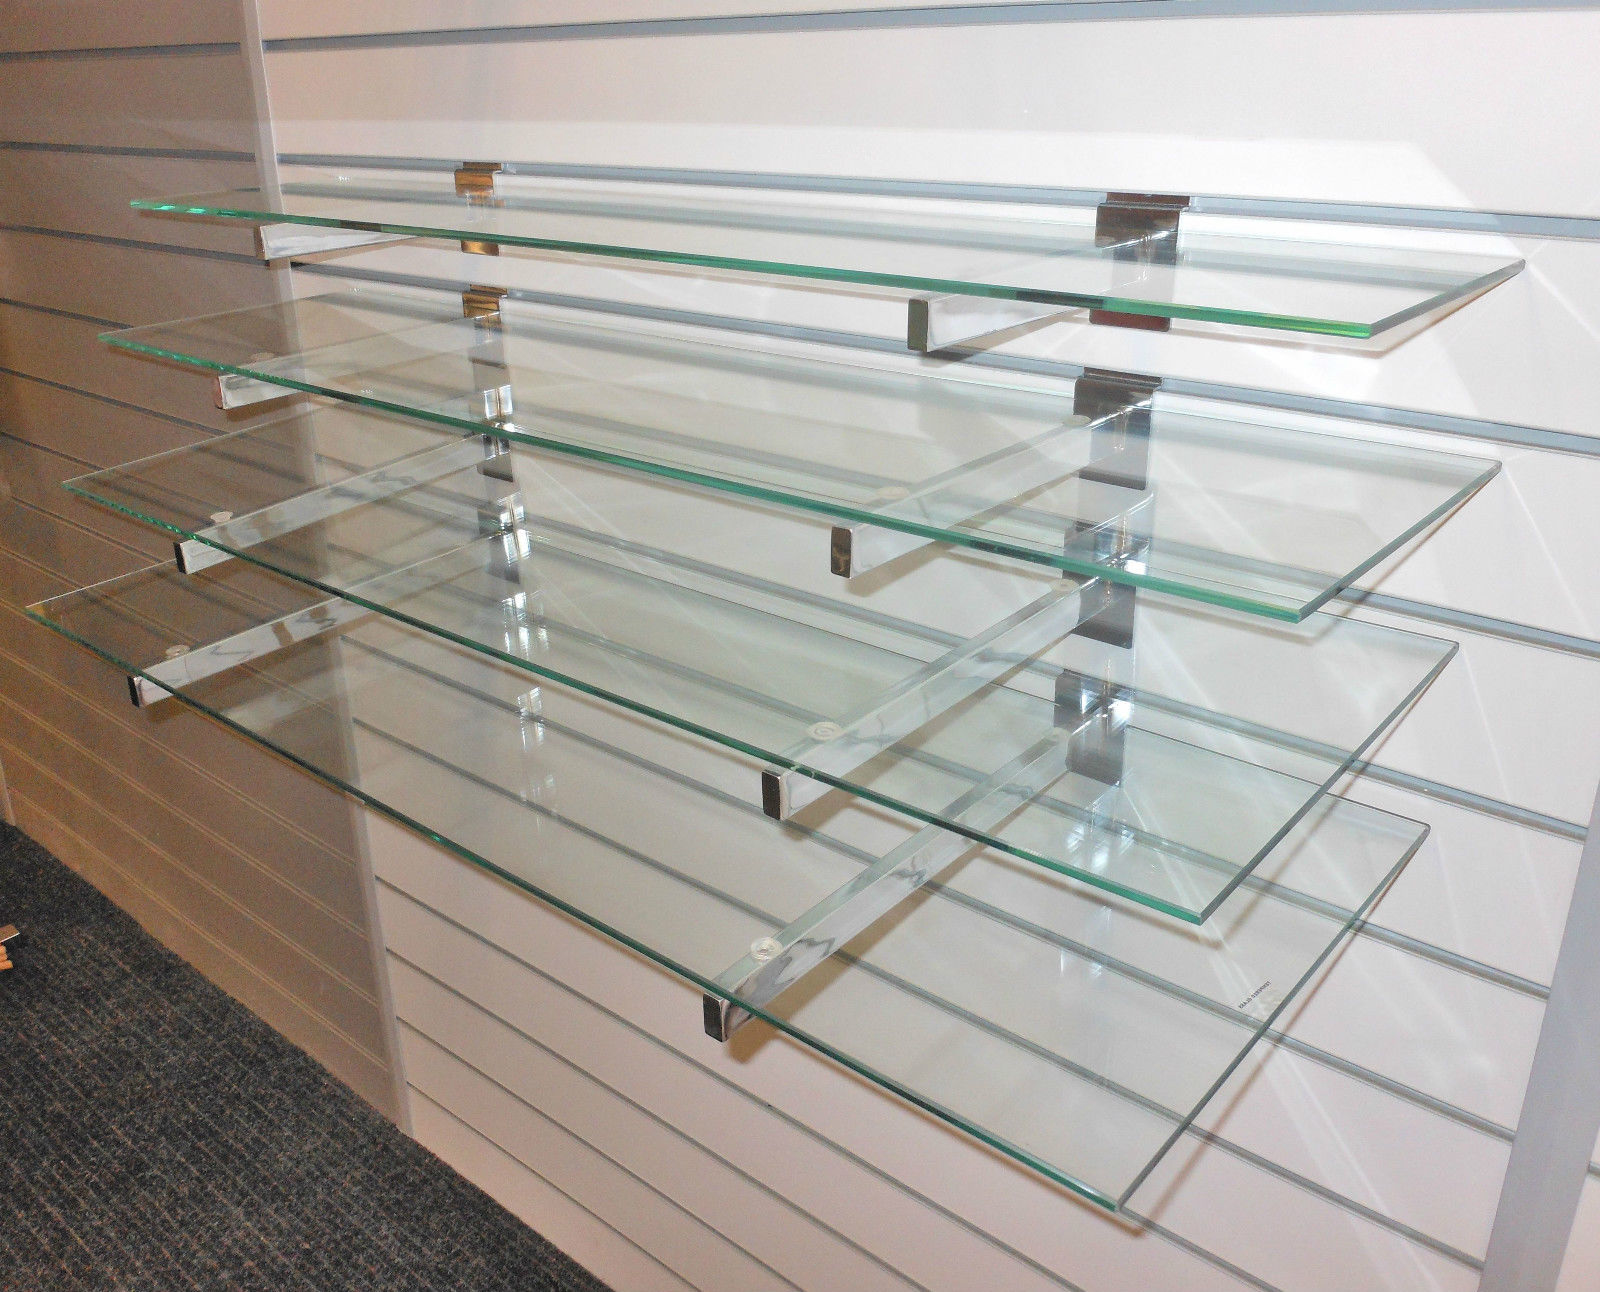 4 toughened glass shelves with or without slatwall brackets wall display new - Glass Shelf Brackets